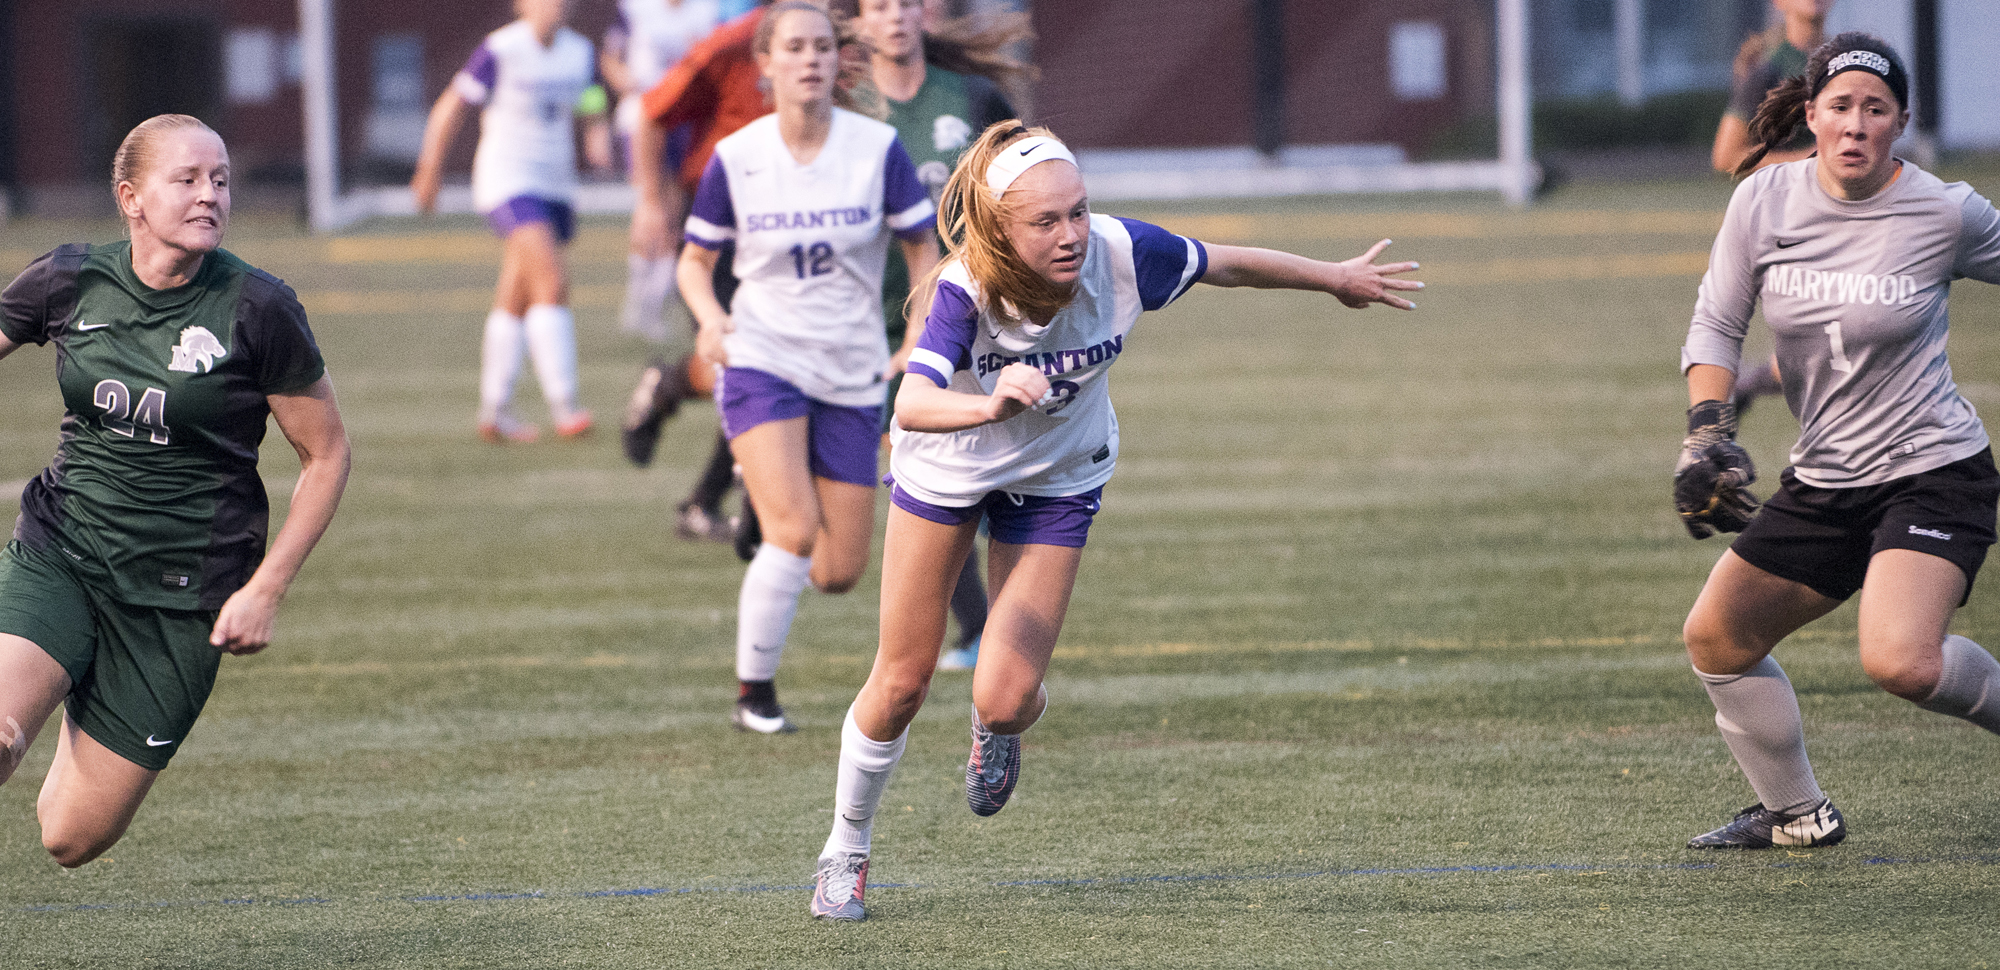 Freshman Mazie Stiles scored her first career goal in the Royals' 3-1 win at Elizabethtown on Saturday.